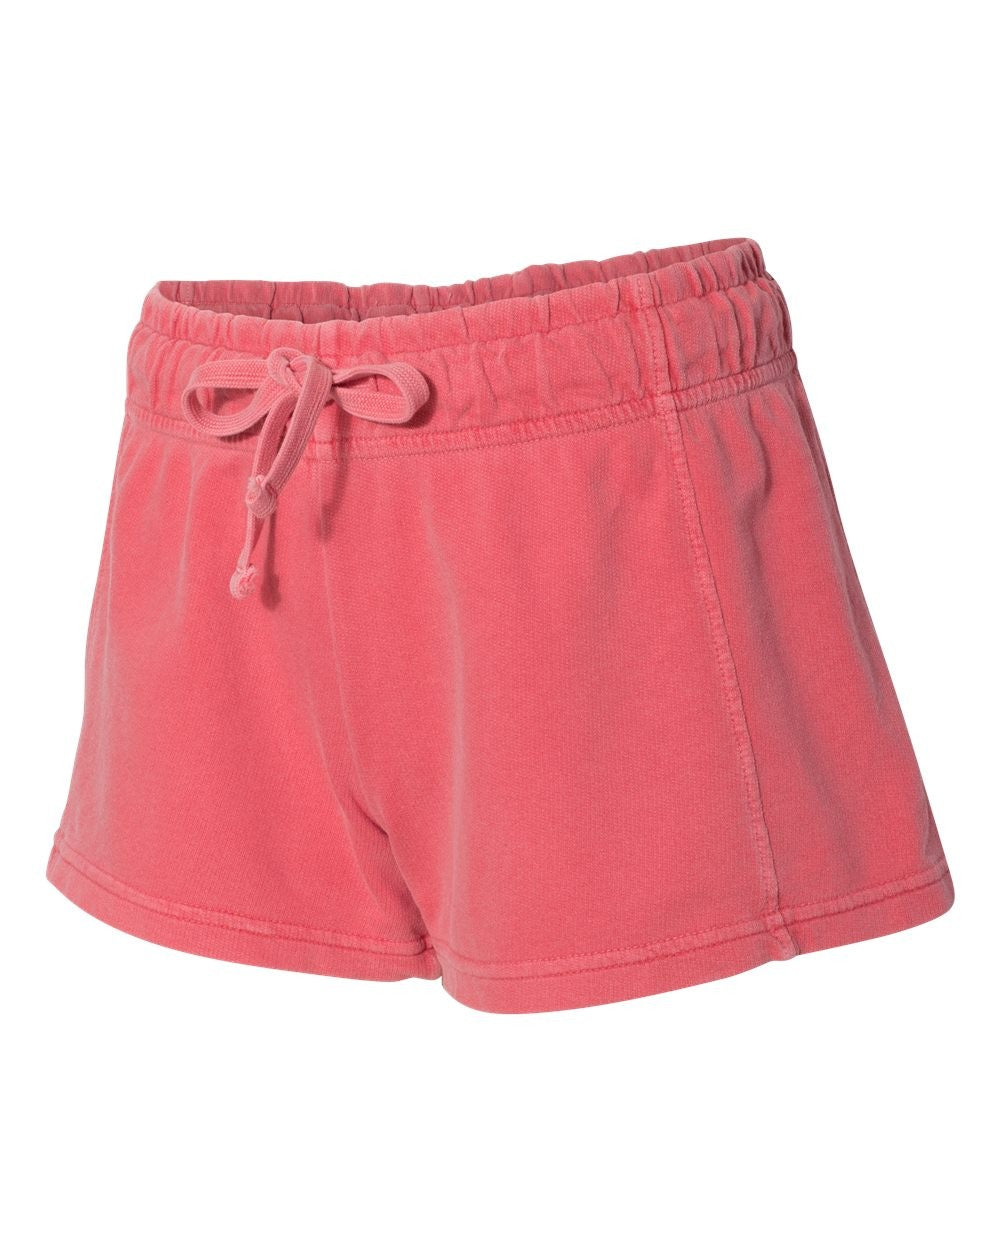 Lyssa's Vacation Shorts